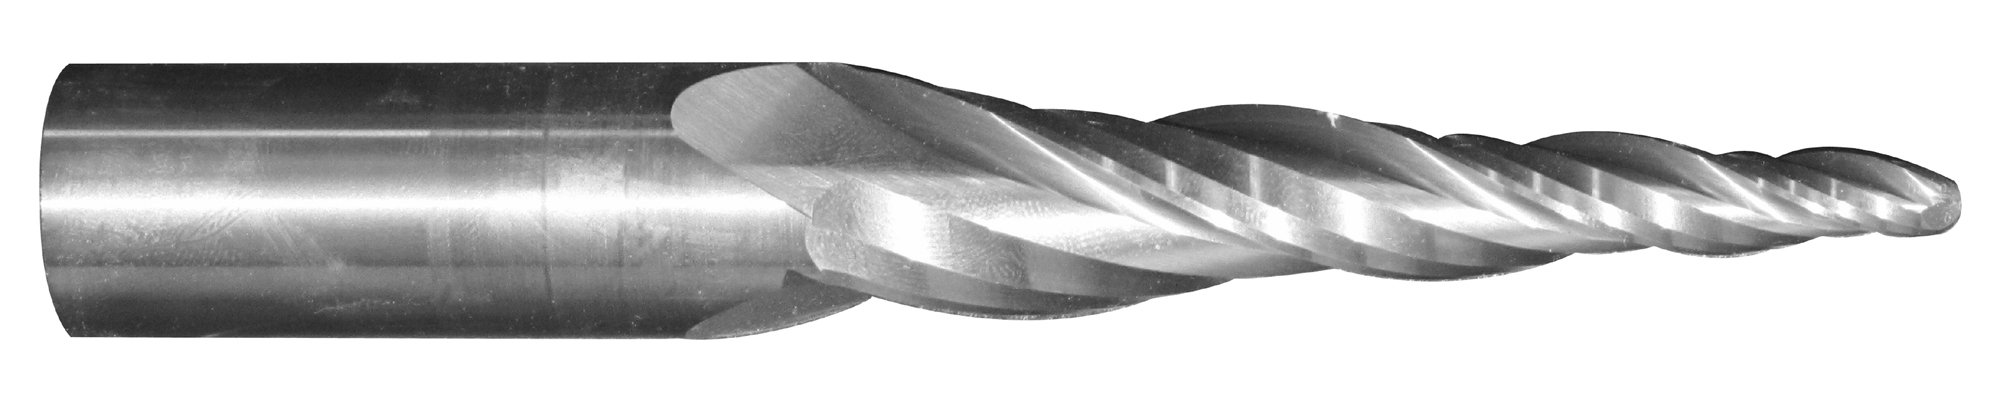 1/8'' Tip Dia. x 1'' Flute Length - Solid Carbide Tapered End Mill - 6 Degree Per Side, Ball End by STAR USA